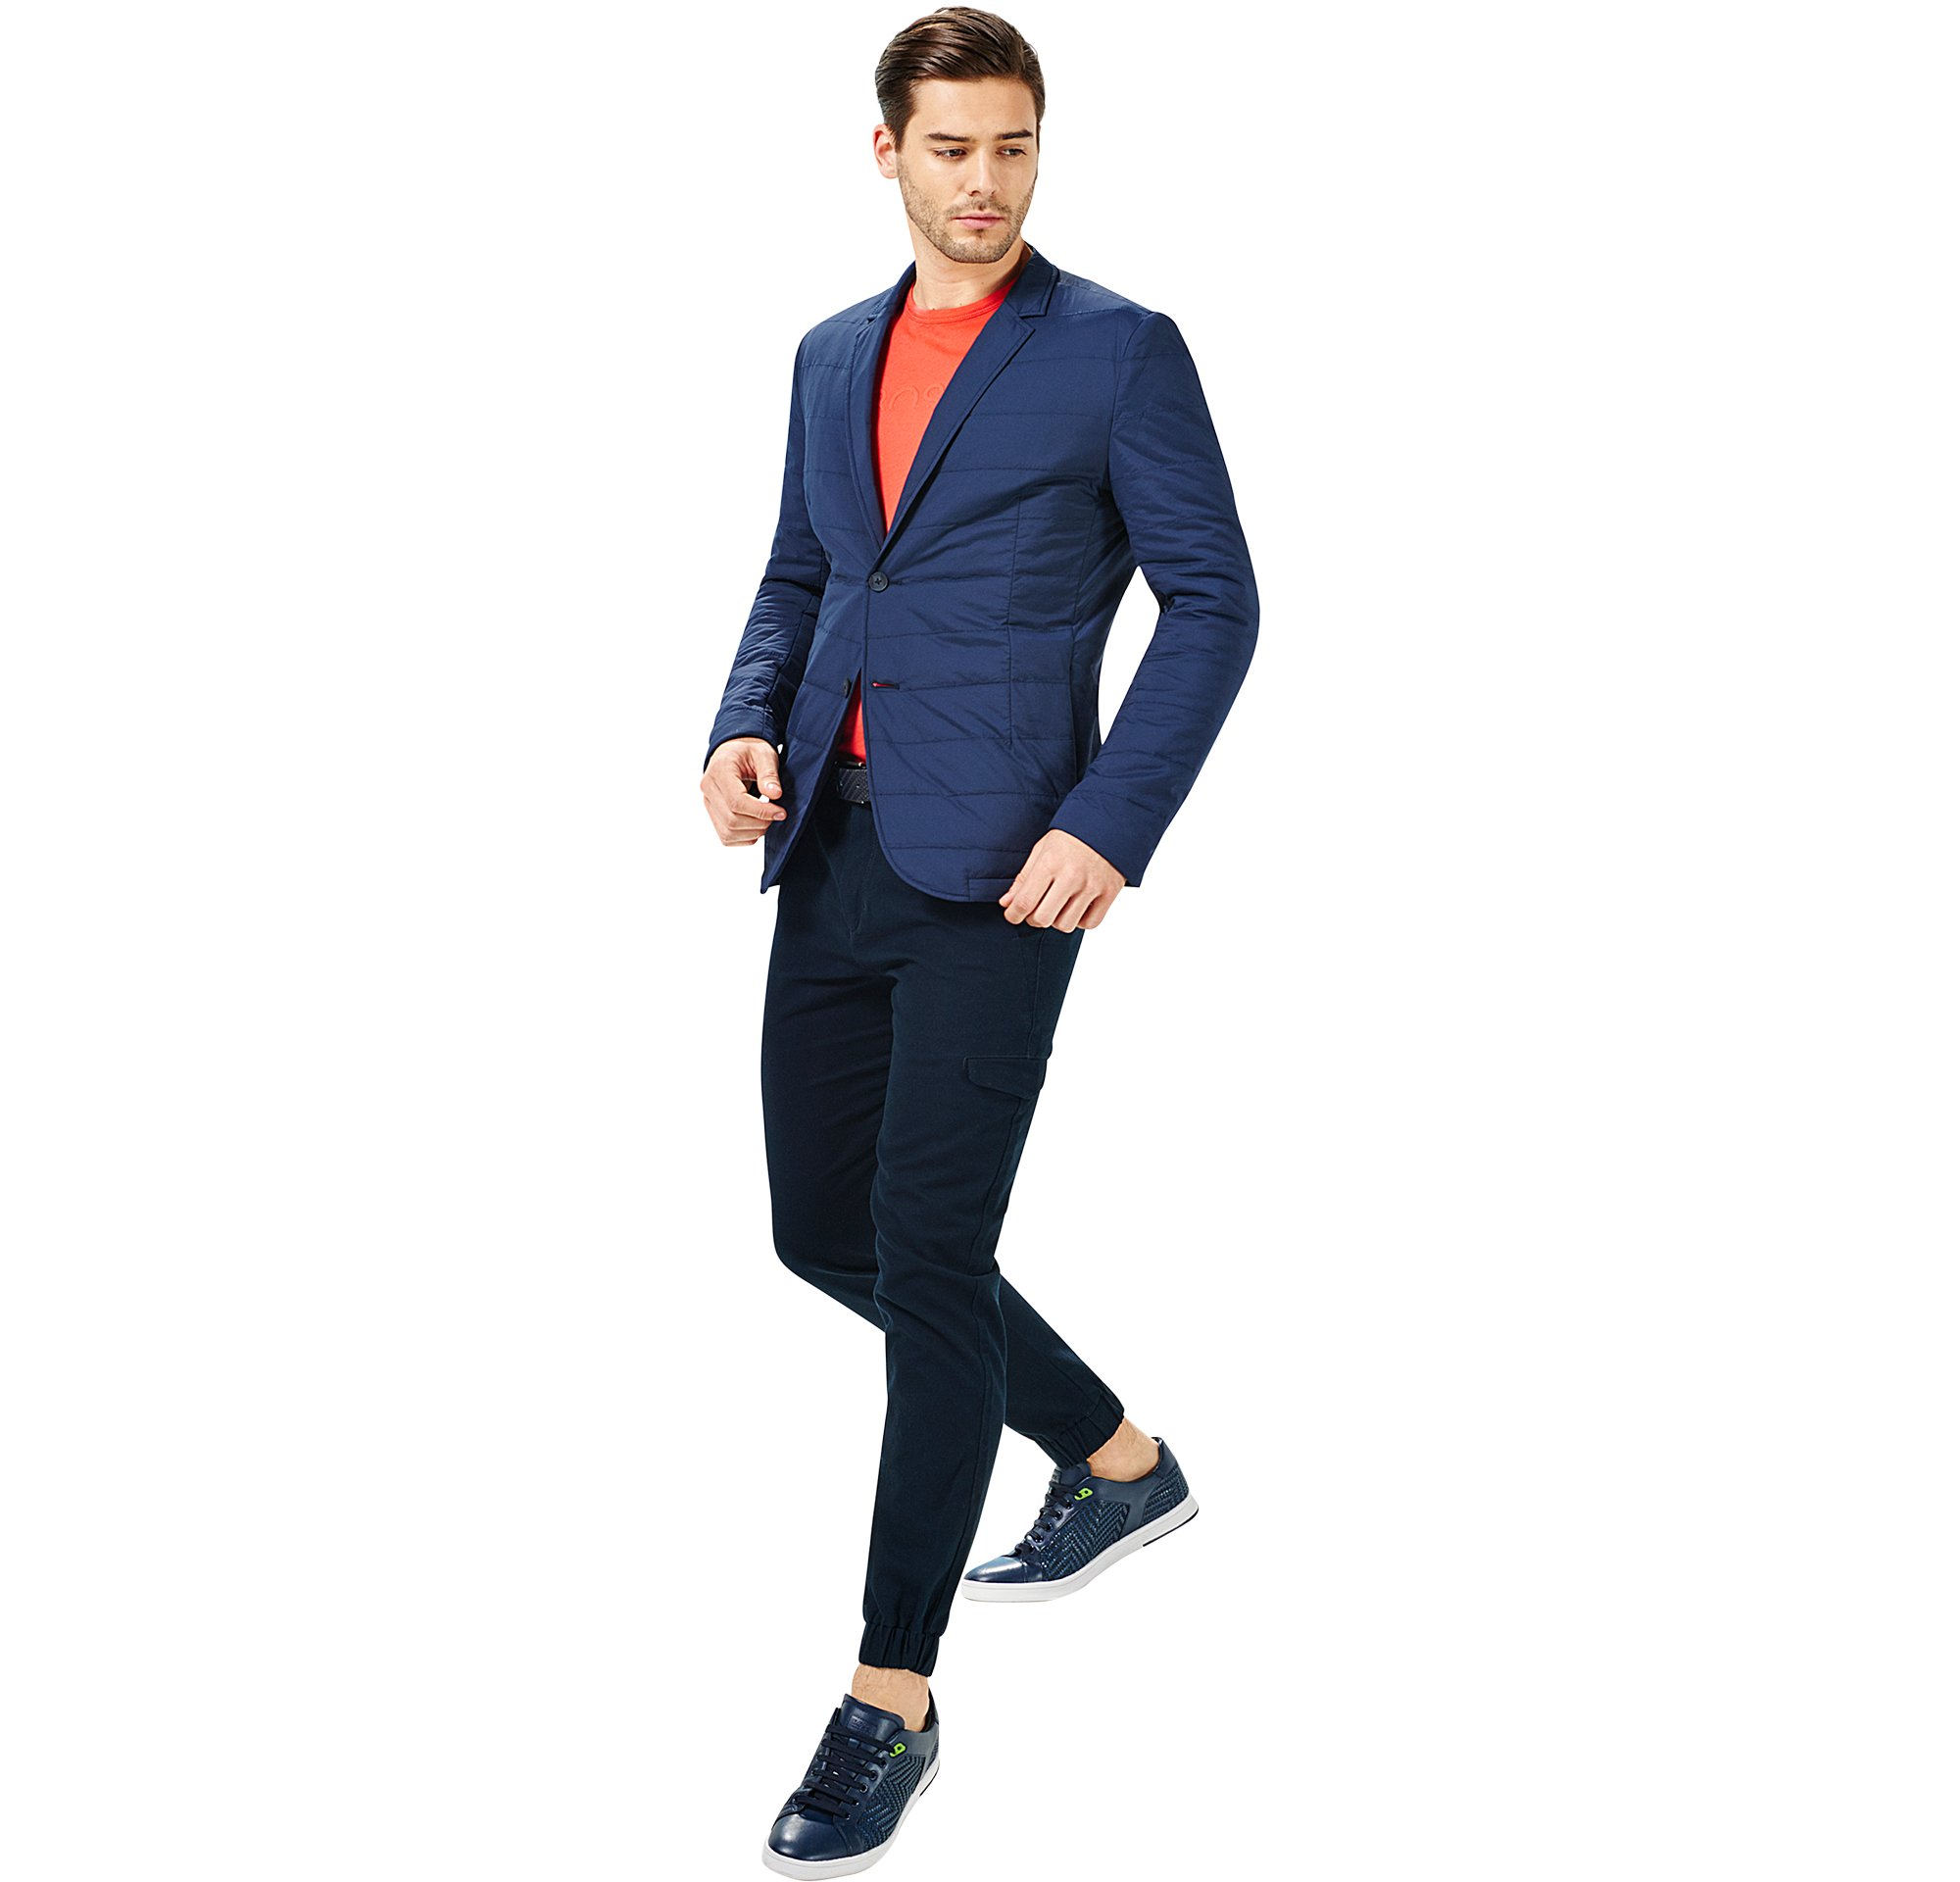 Jacket, jersey, trousers and shoes by BOSS Green Menswear